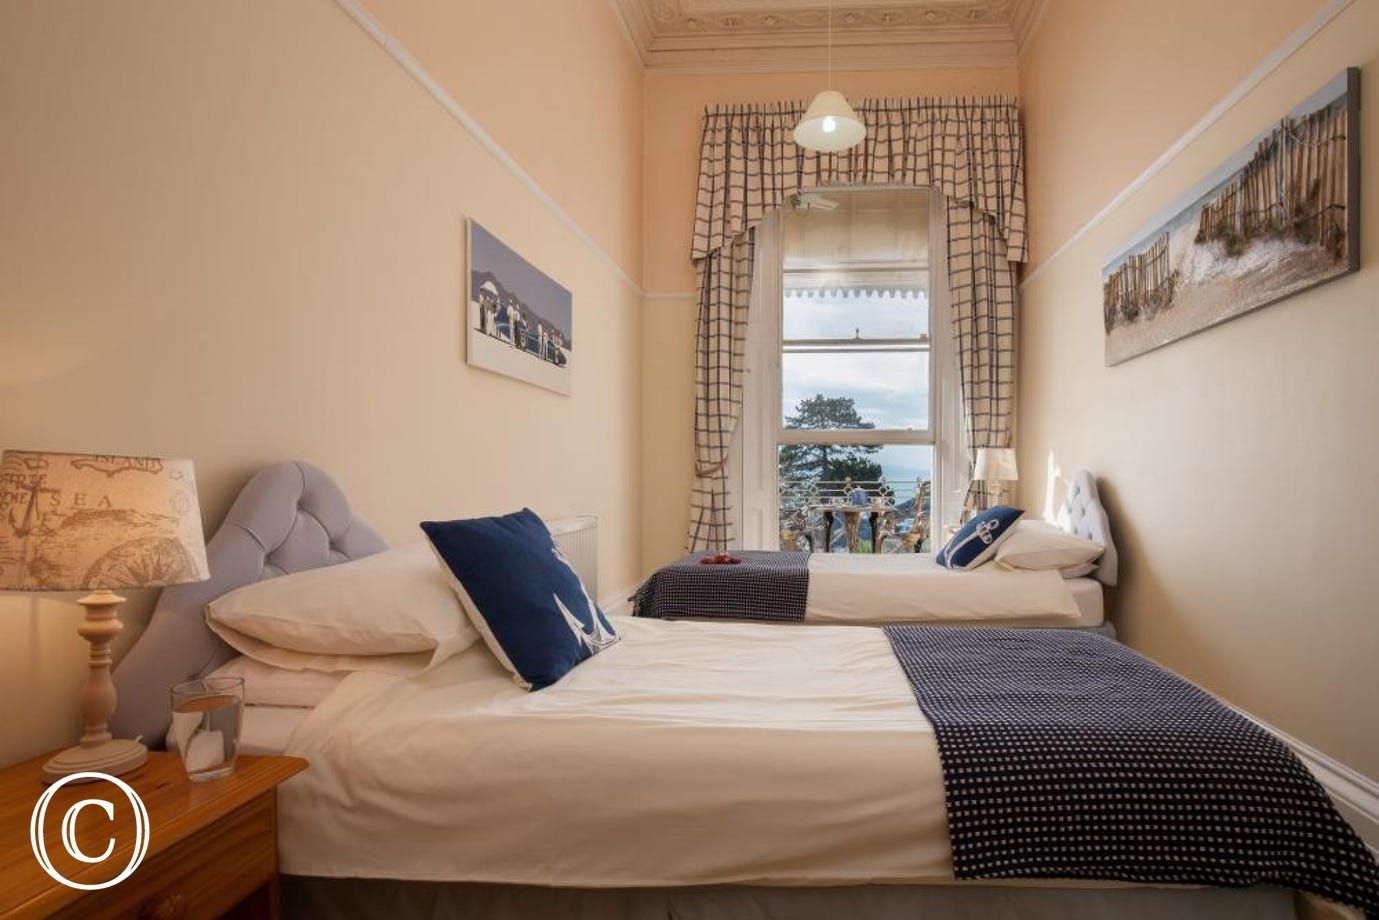 Sea view twin bedroom, ideal for children and family self-catering breaks